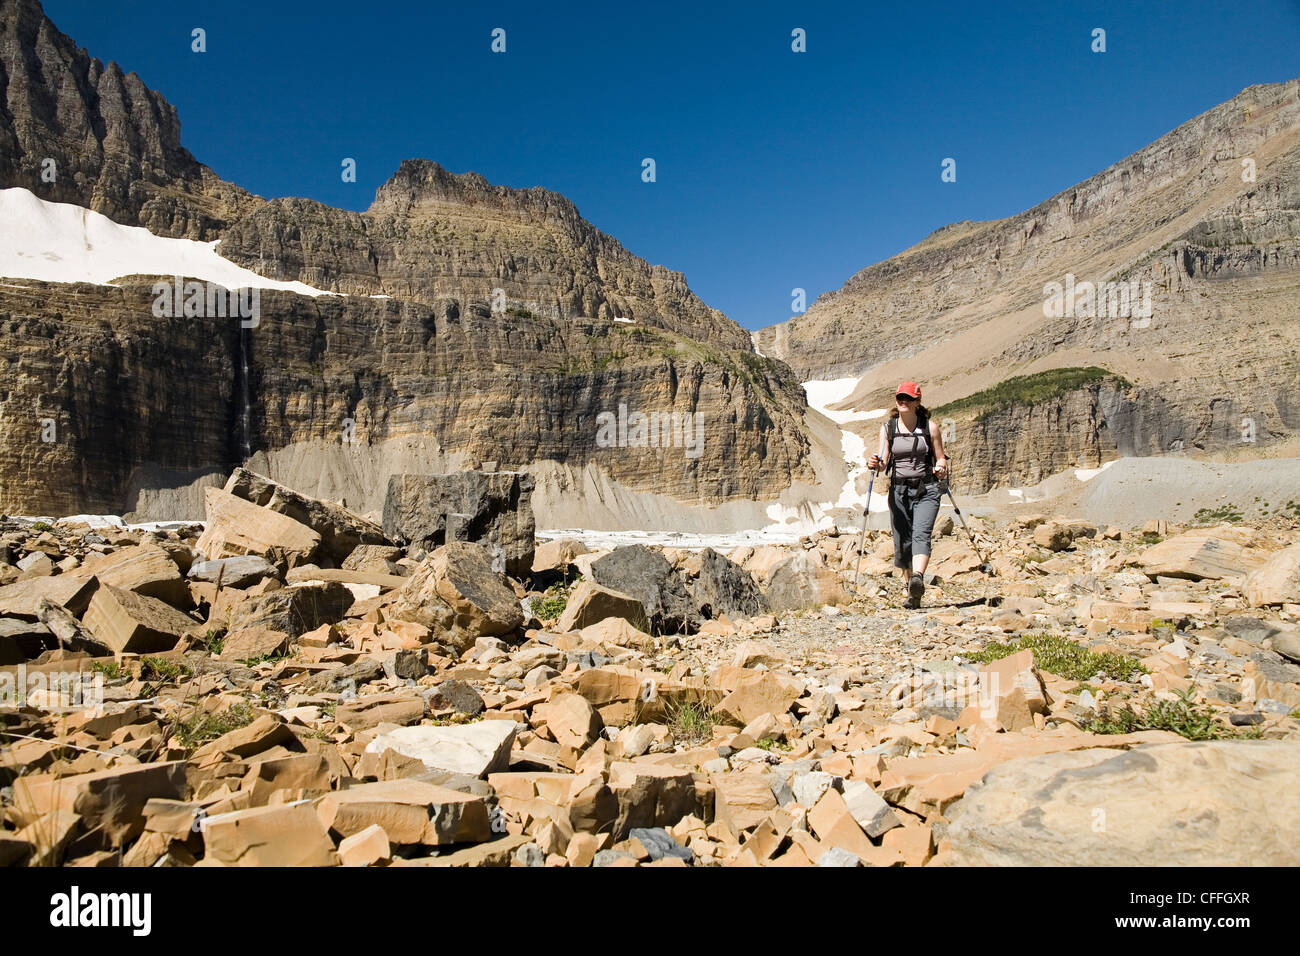 A woman in her early thirties hikes along the Grinnell Glacier trail in Glacier National Park, Montana. - Stock Image